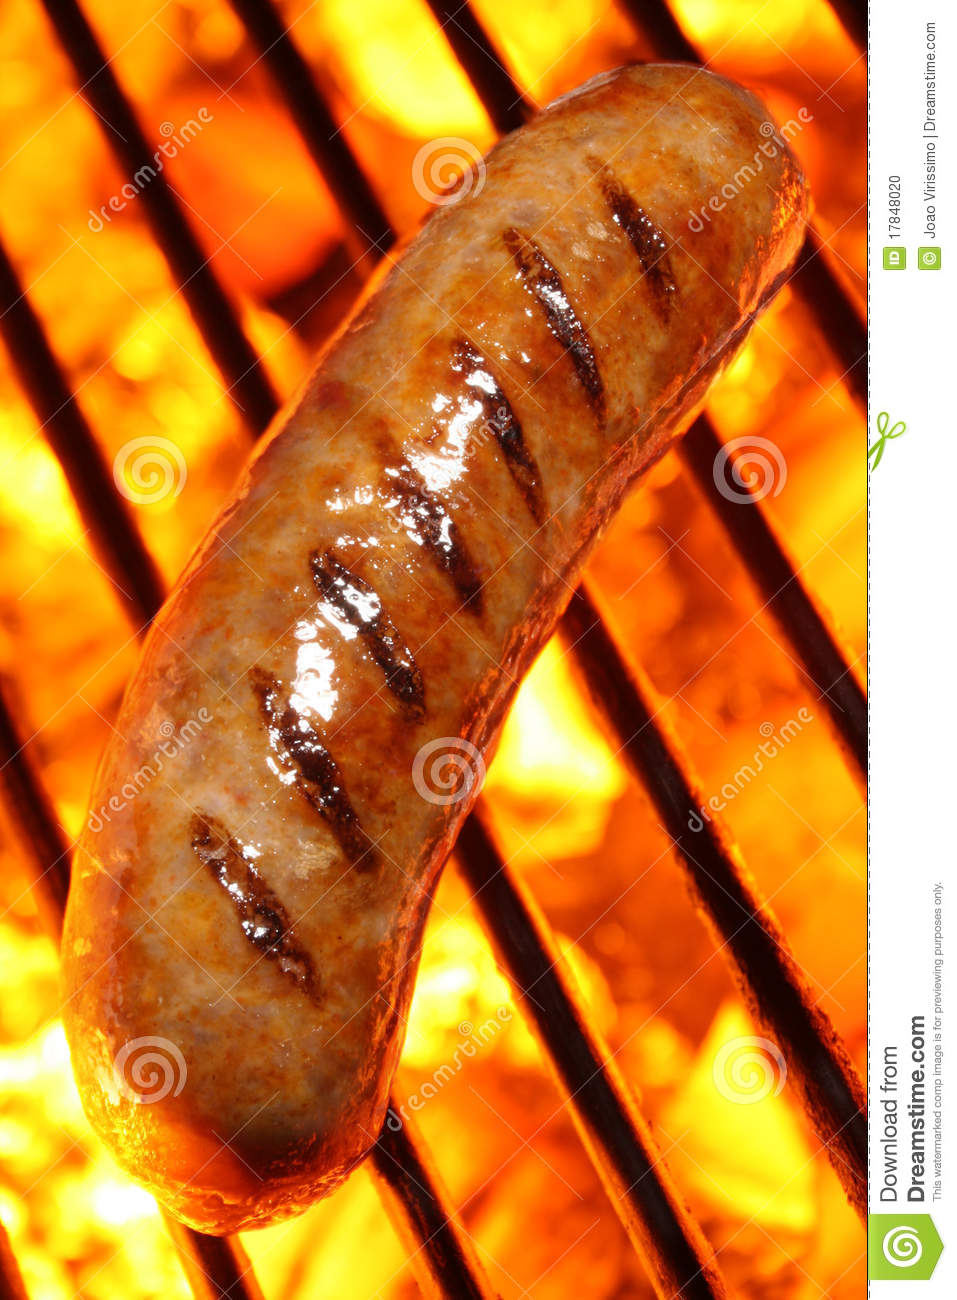 cooking a sausage hot dog on barbecue grill stock photo image of grill barbeqcue 17848020. Black Bedroom Furniture Sets. Home Design Ideas